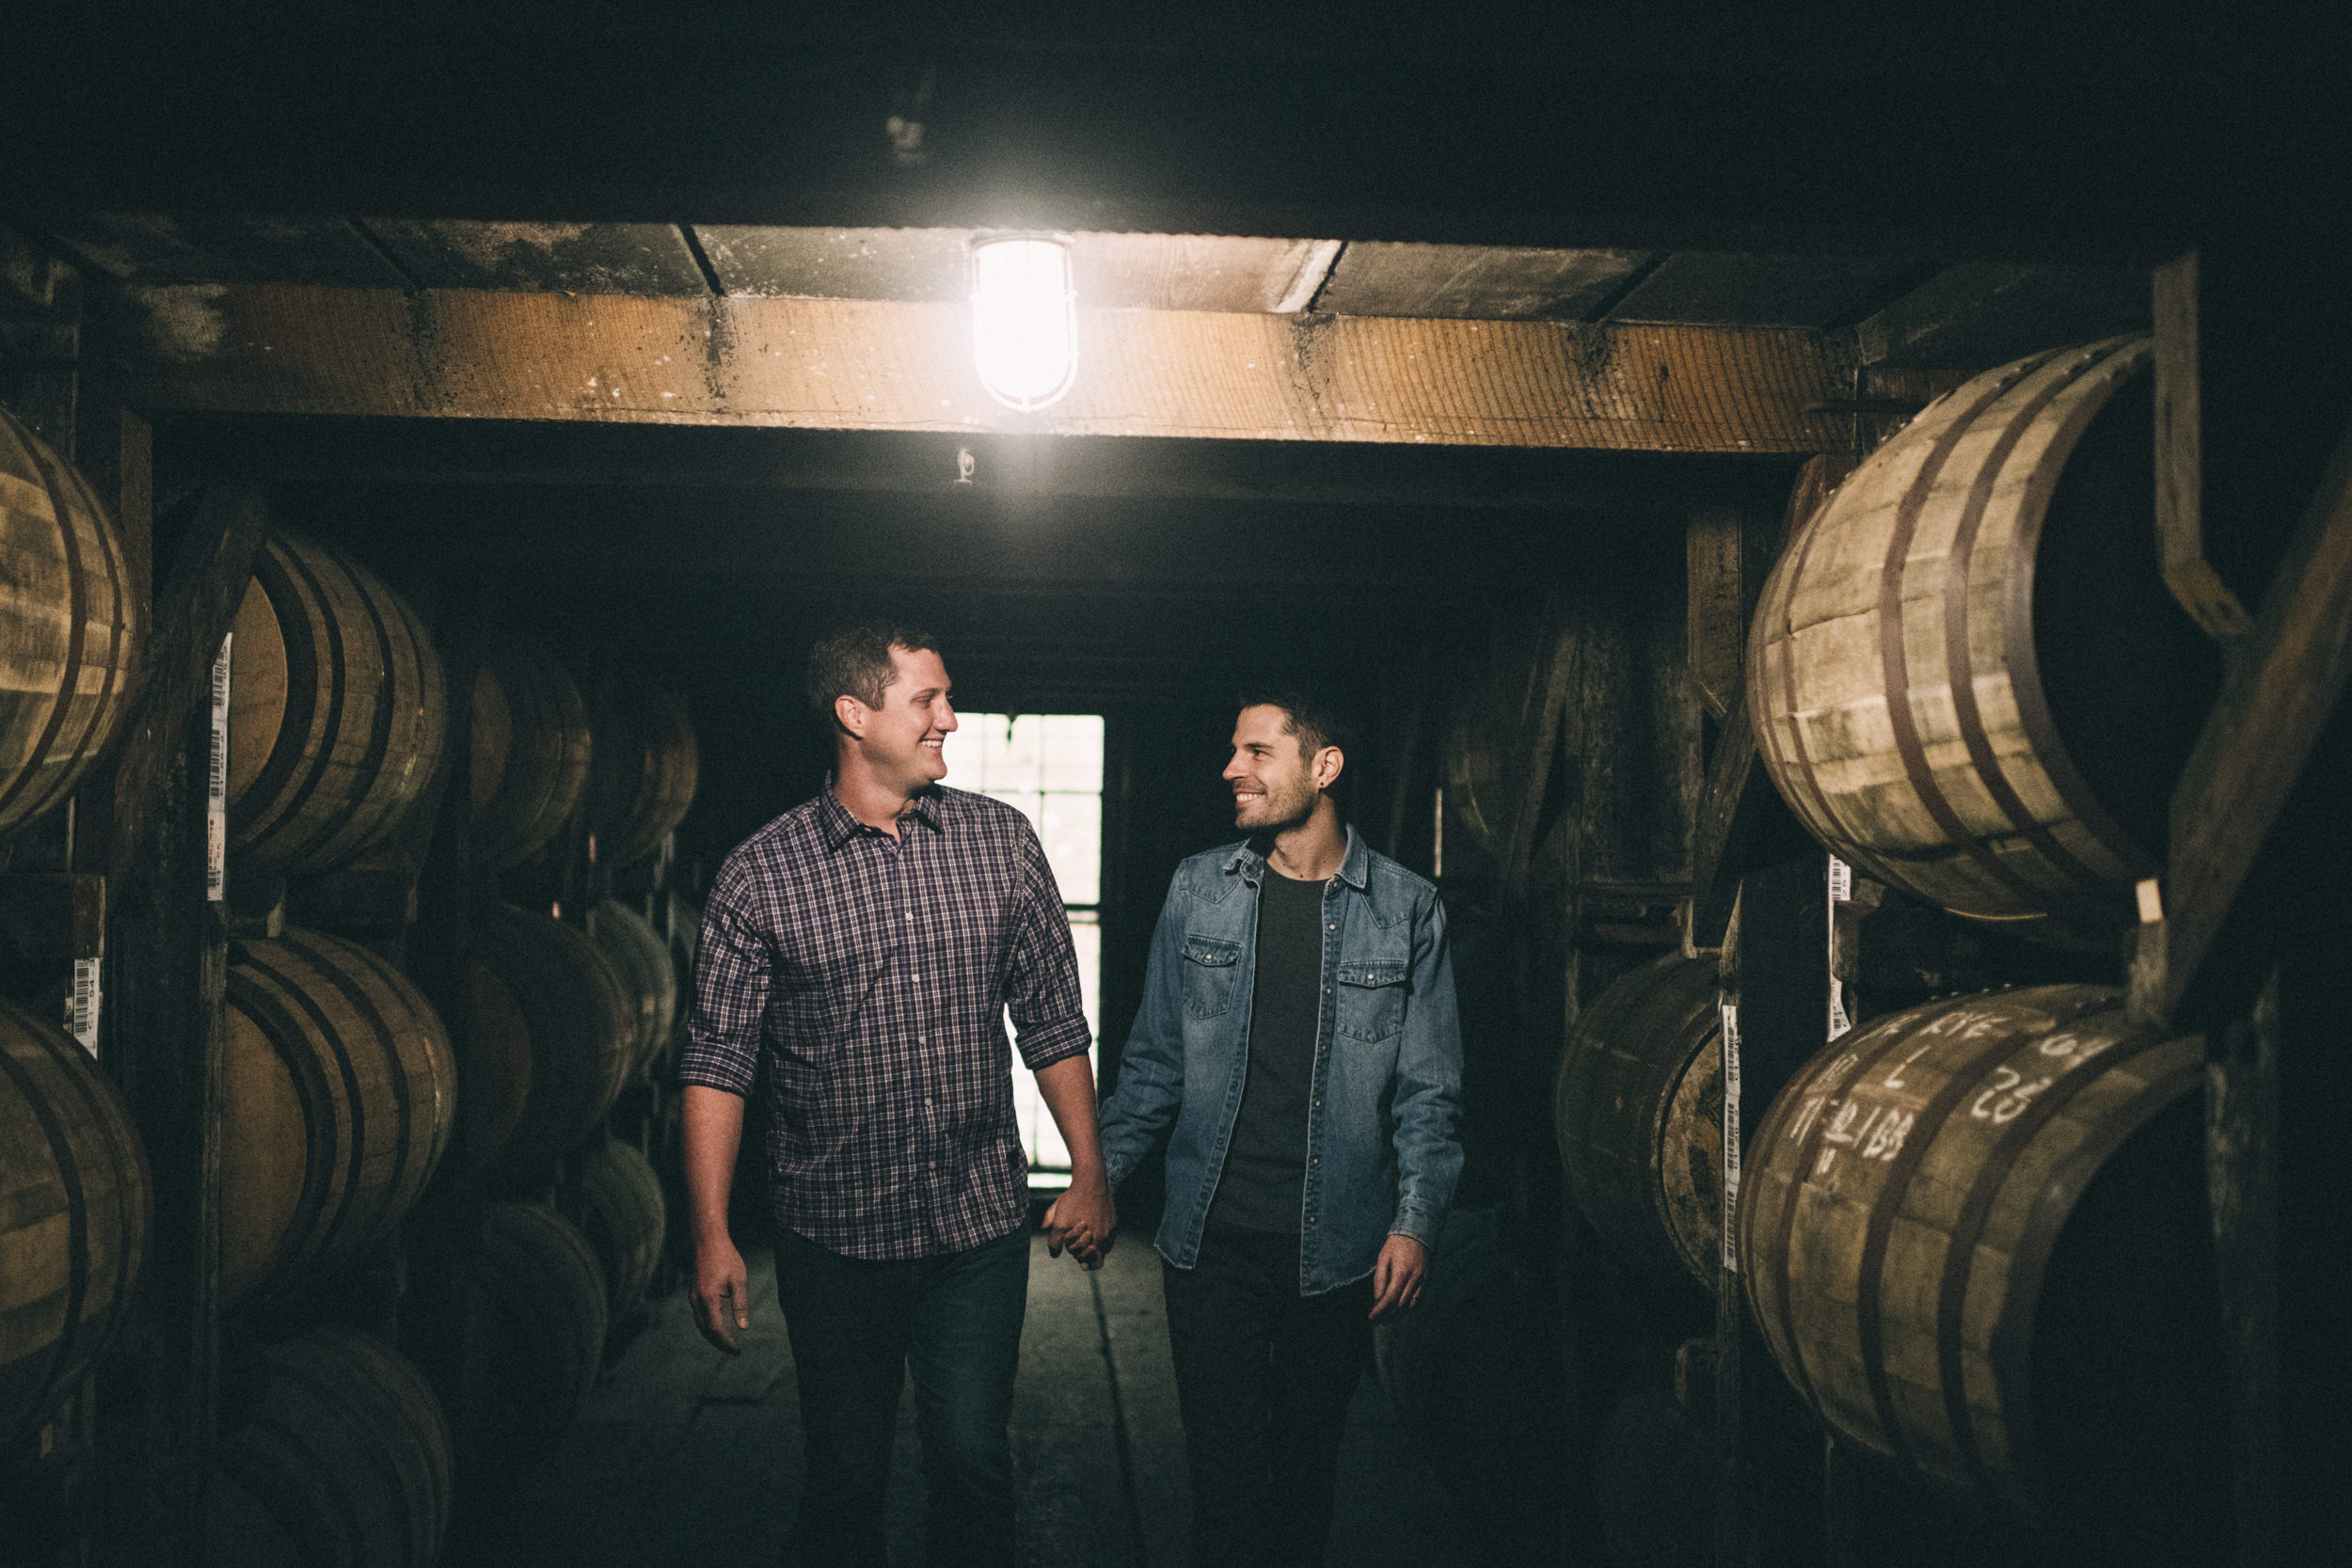 Will-Nate-Buffalo-Trace-Distillery-Engagement-Session-By-Kentucky-Wedding-Photographer-Sarah-Katherine-Davis-Photography-5edit.jpg